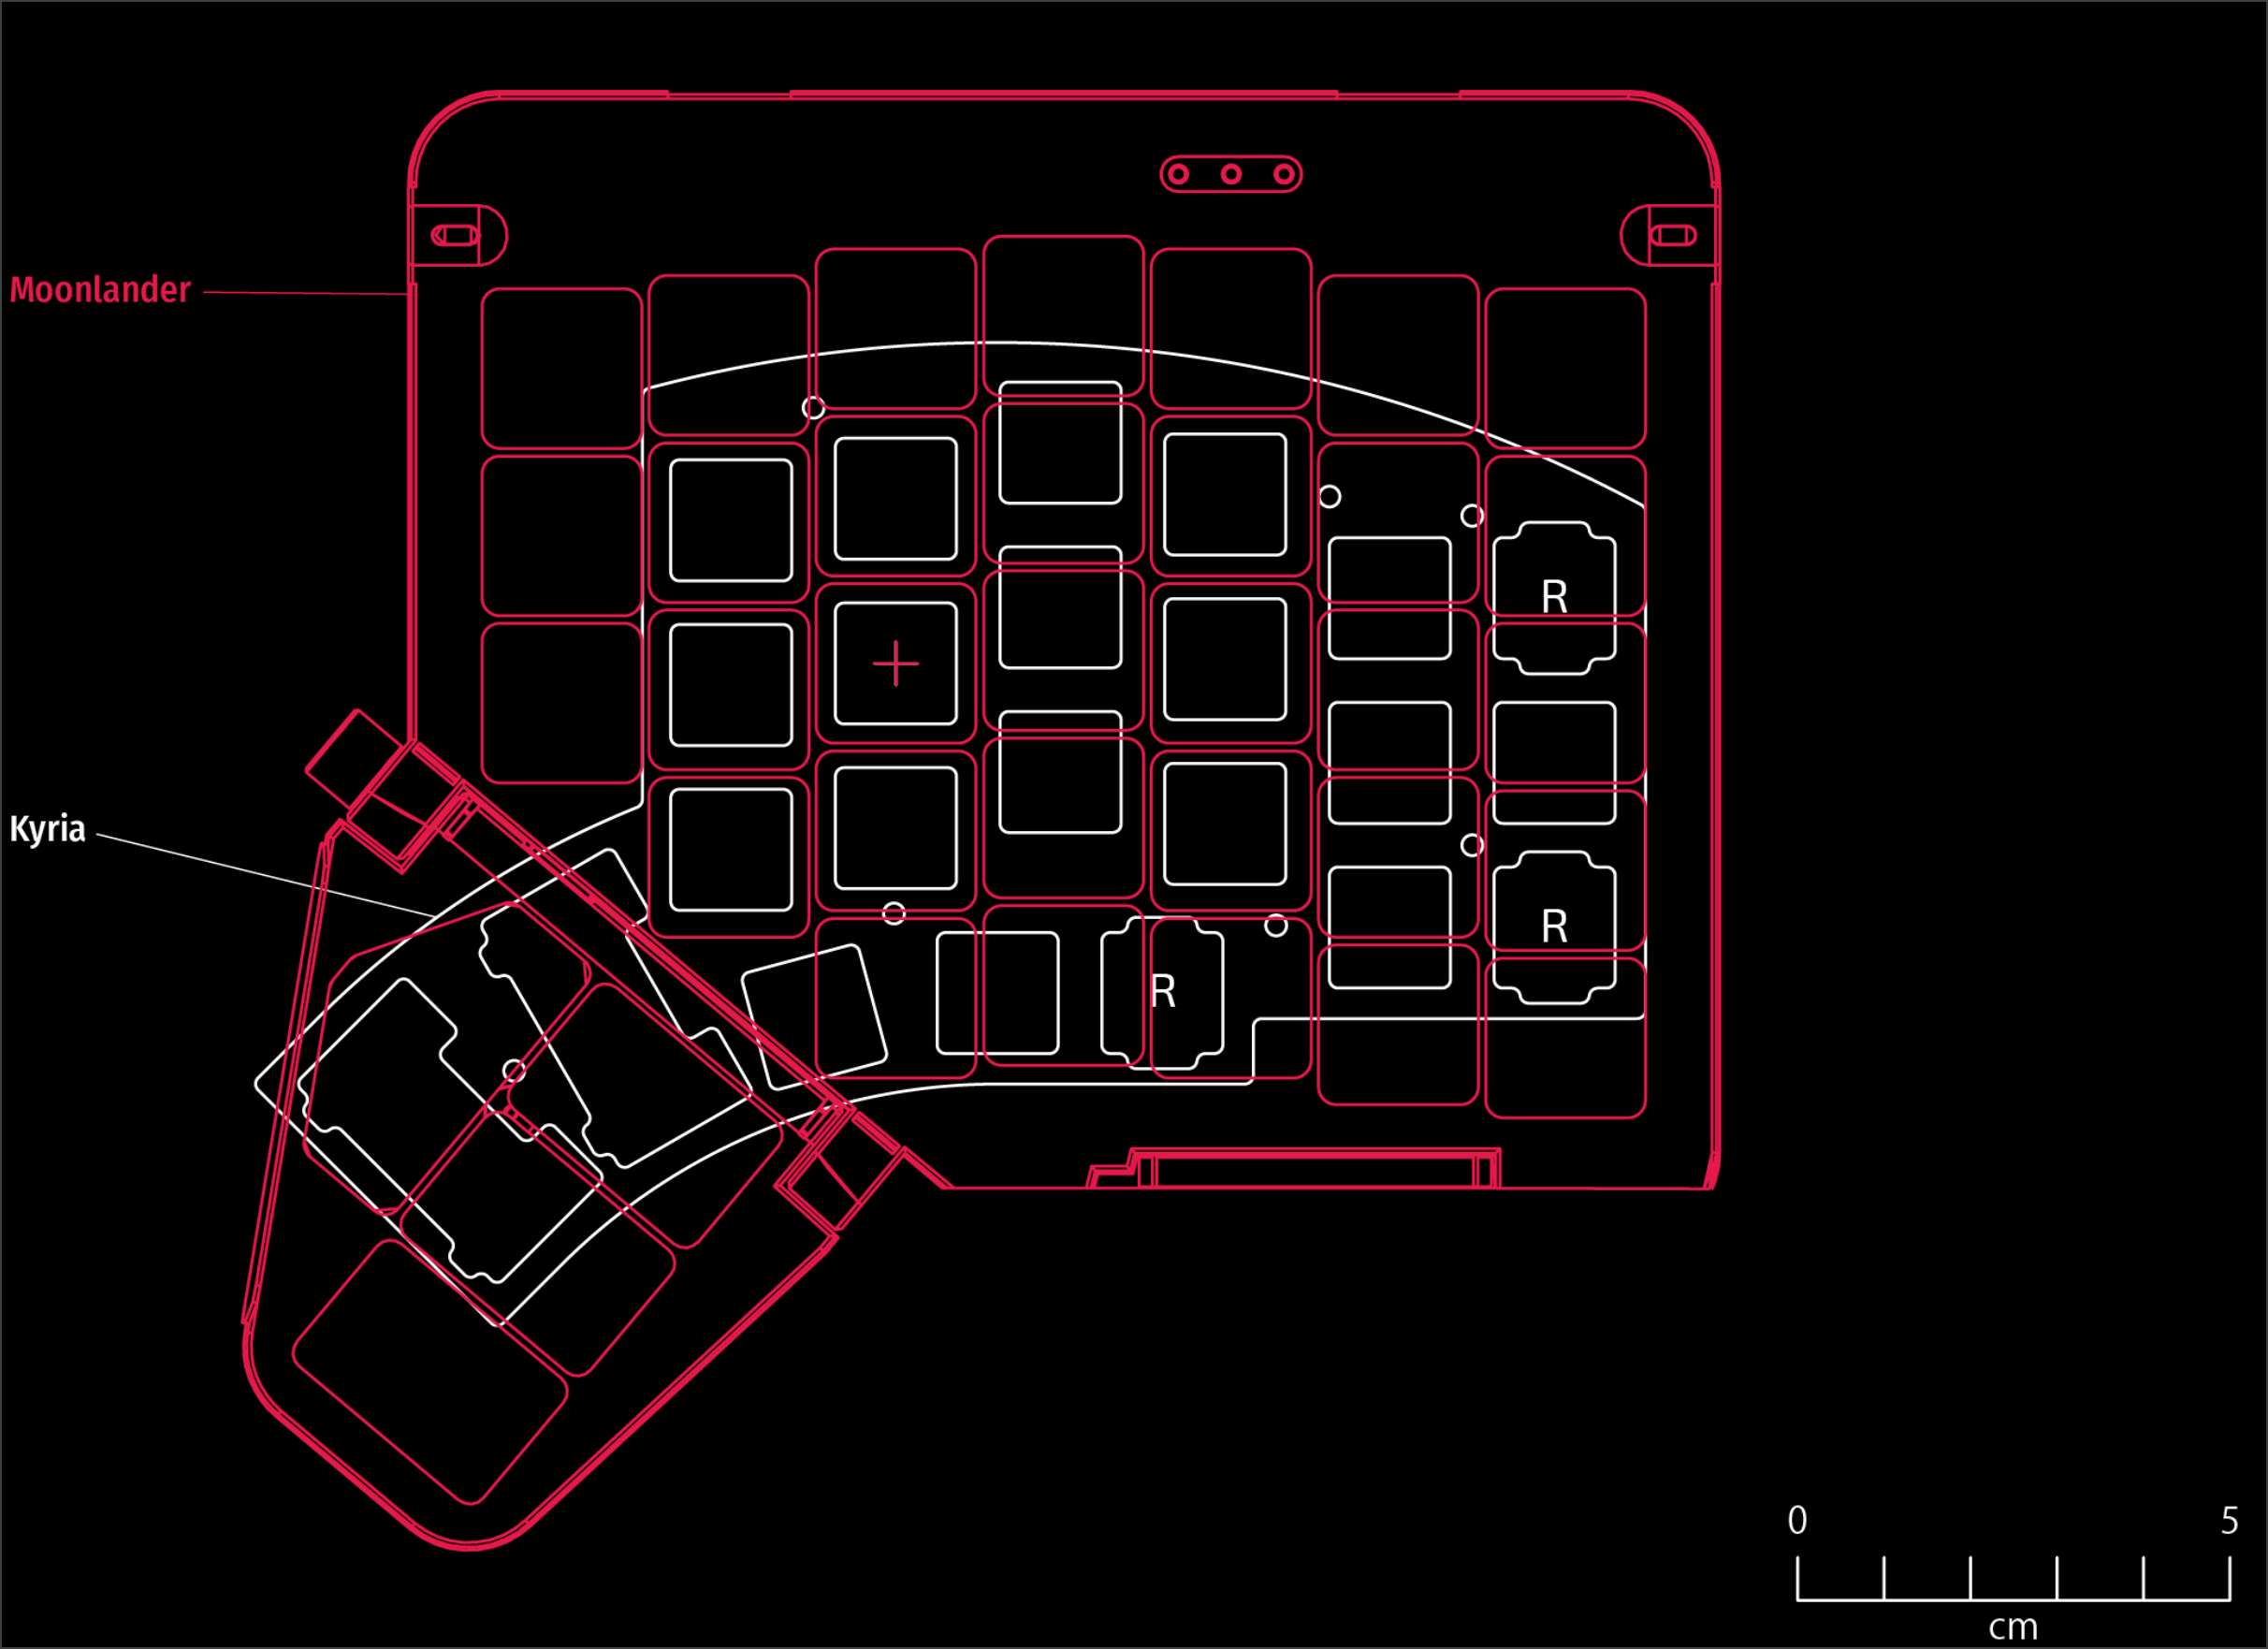 Comparison between the Moonlander and Kyria (a small split keyboard)